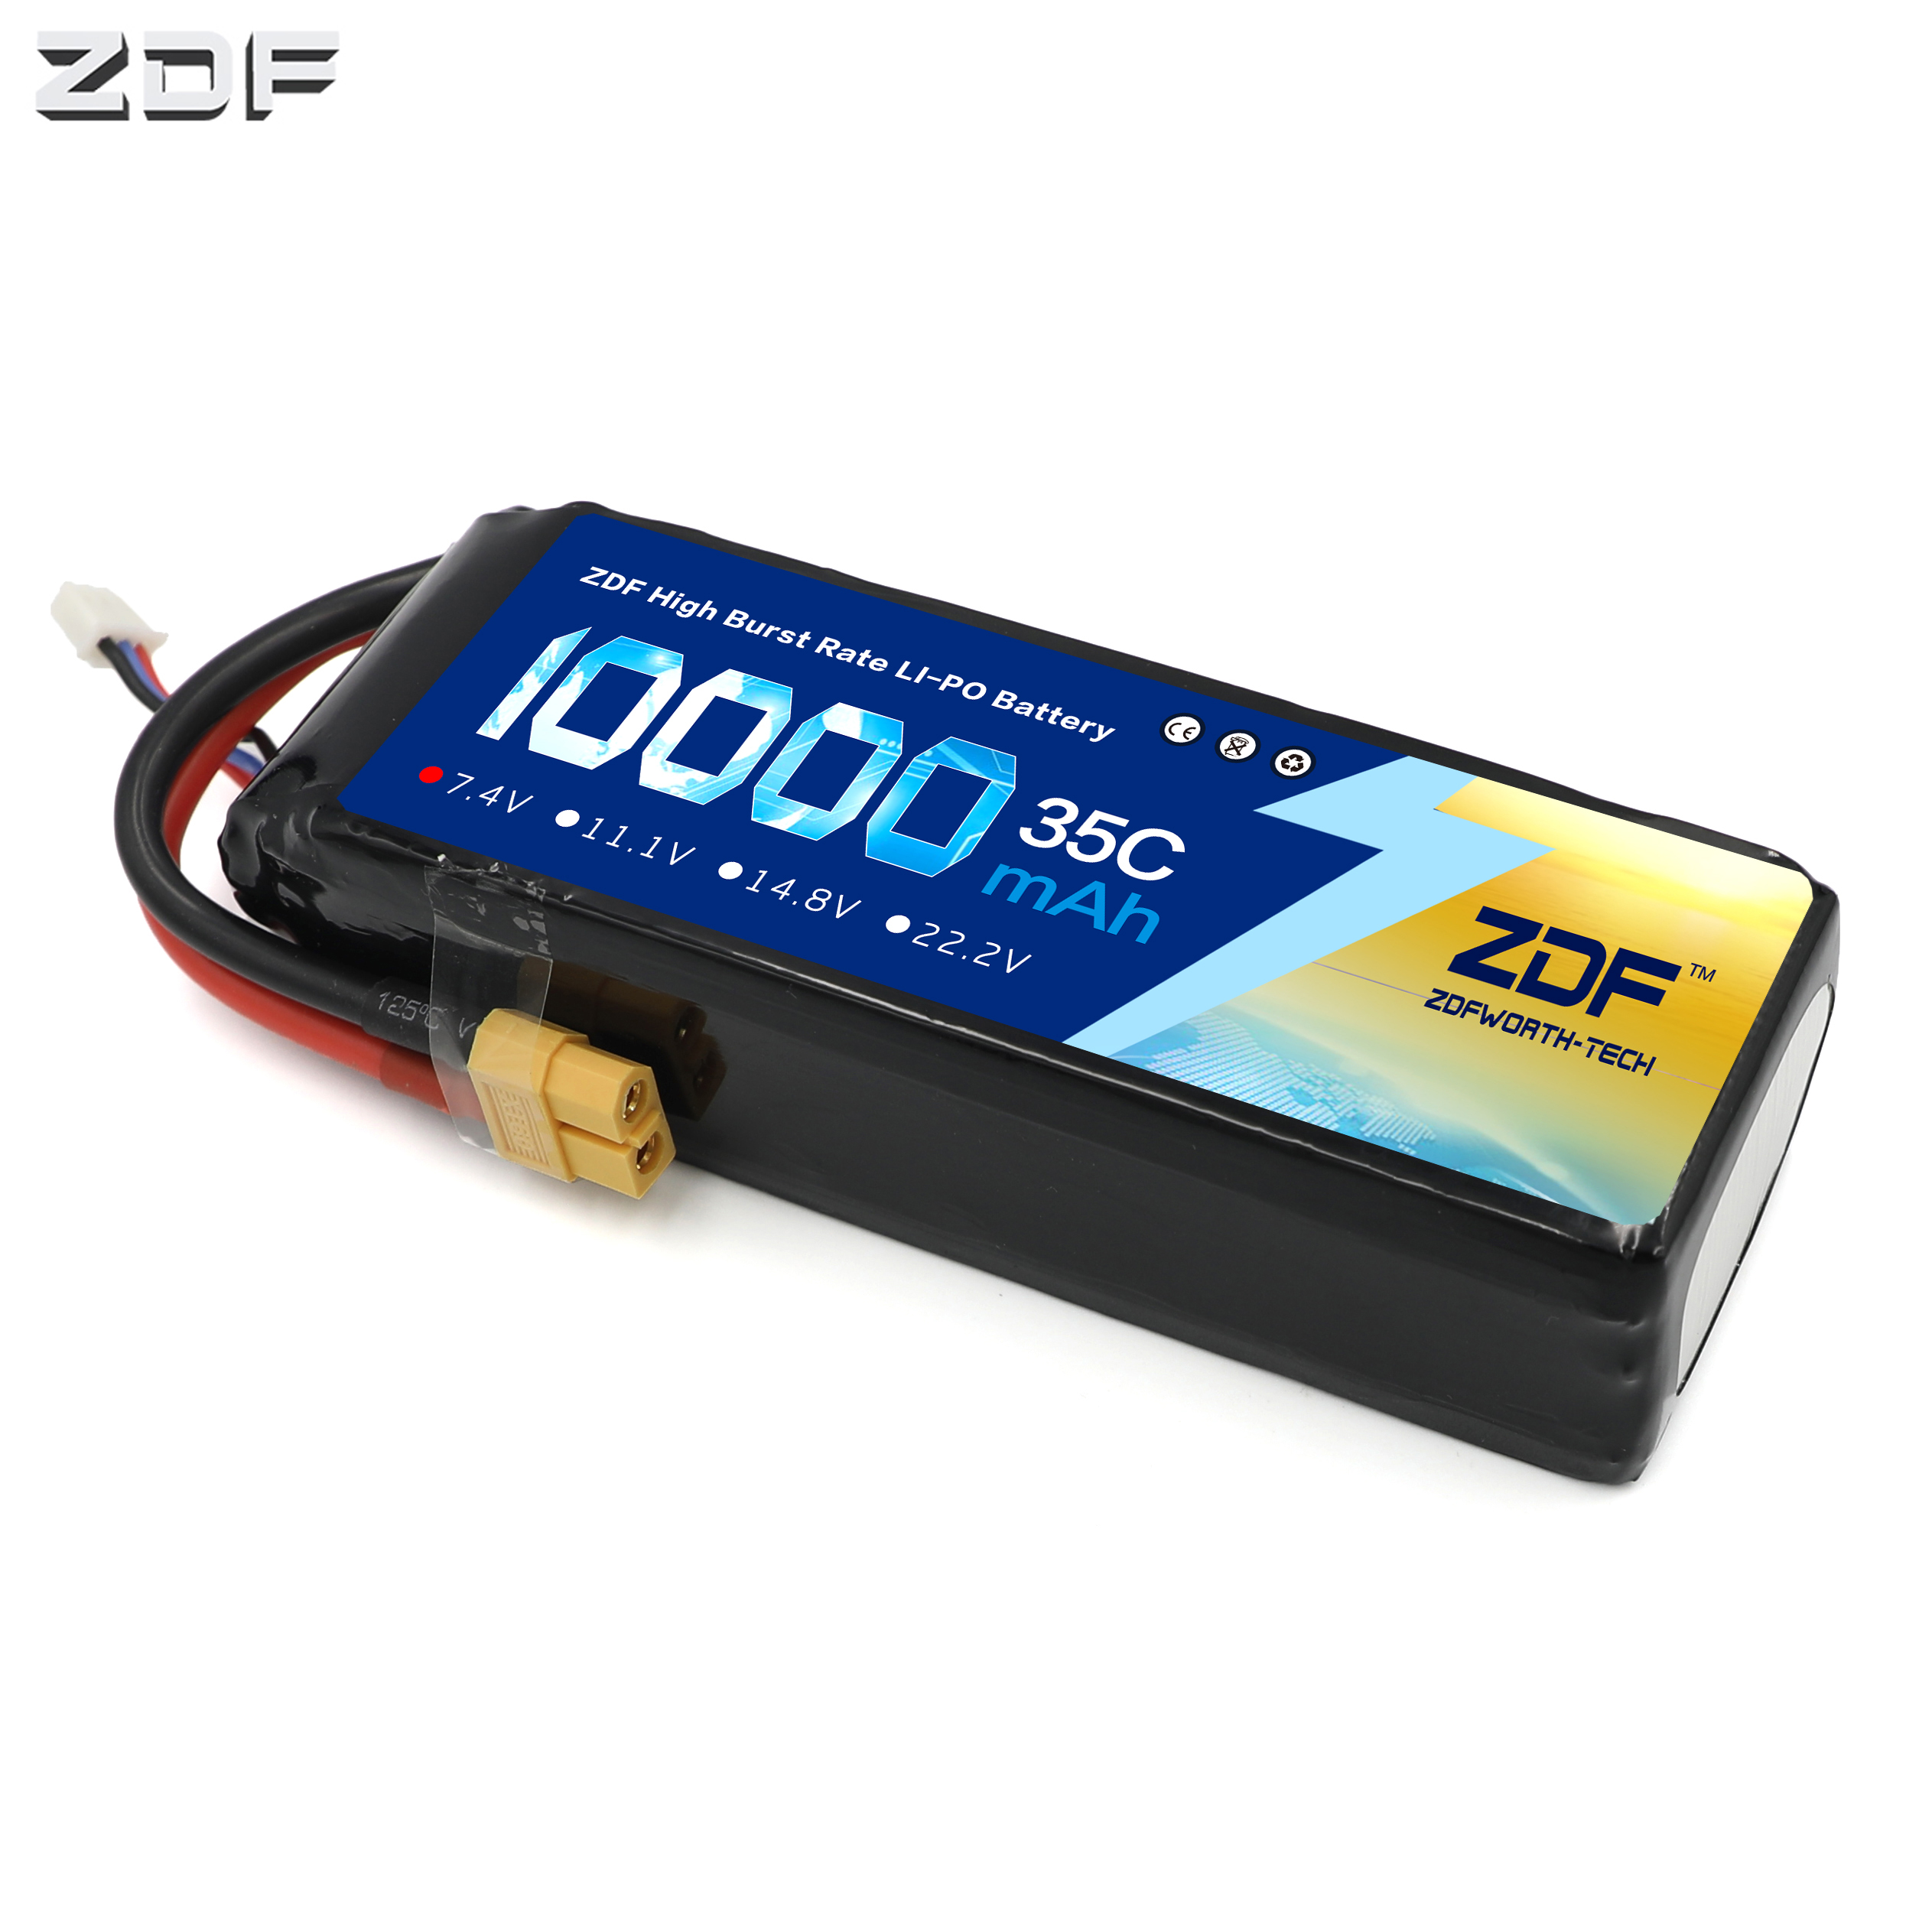 ZDF RC Car Lipo Battery 2S 3S 7.4V / 11.1V 10000mah 35C Max 70C XT90 / XT60/ T Plug For Rc Airplane Traxxas Car RC Truck image